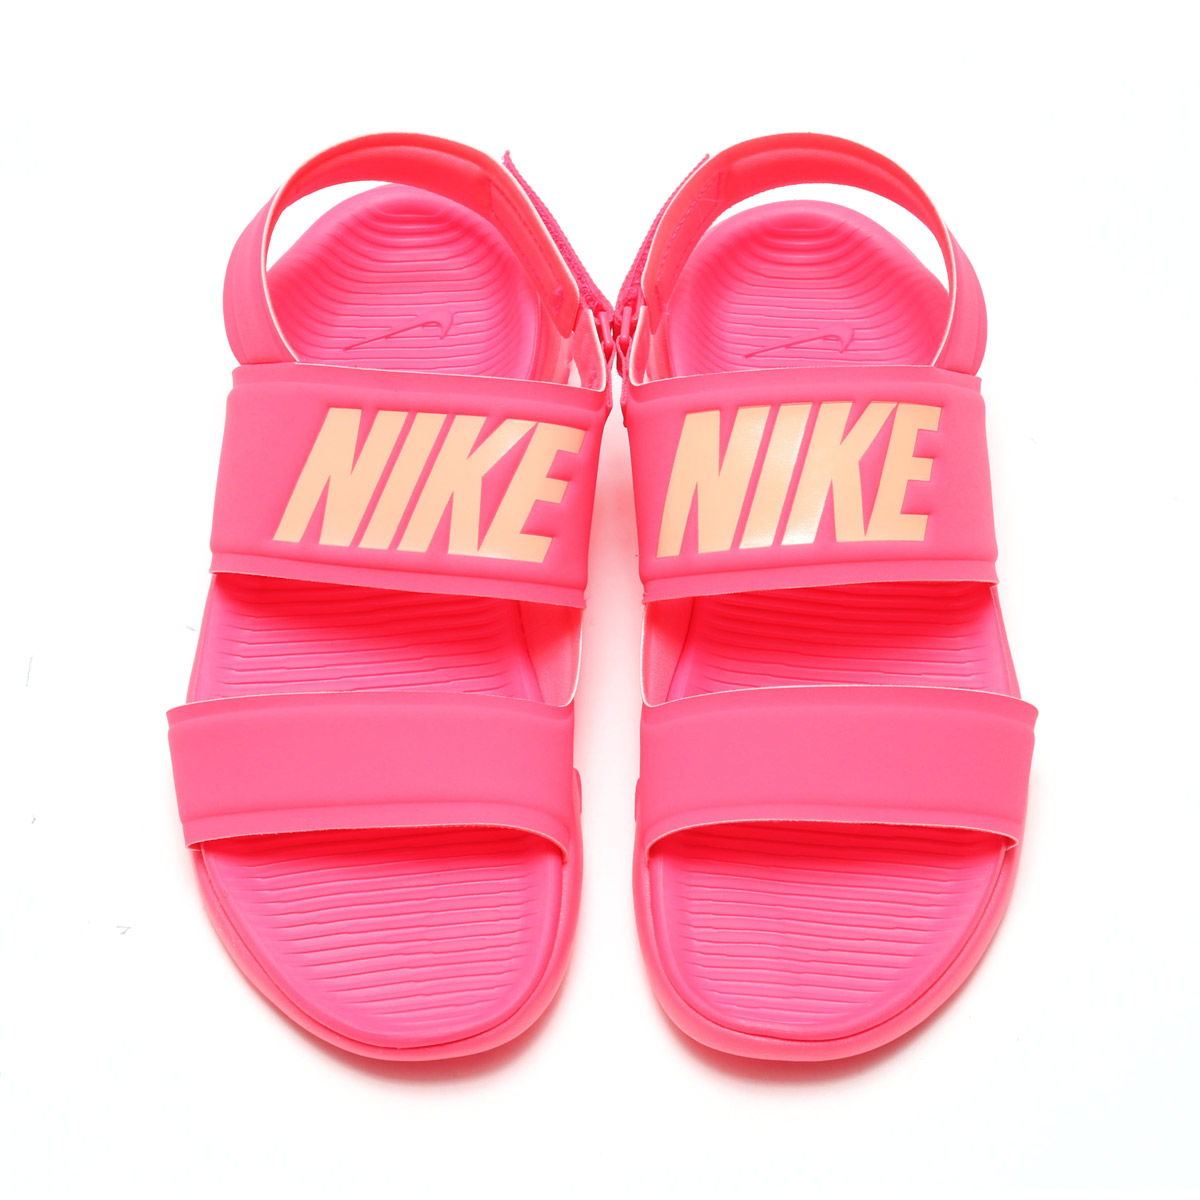 NIKE WMNS TANJUN SANDAL (Nike women tongue Jun sandals) RACER PINK SUNSET  GLOW 17SU-I 6a8a6e6cd